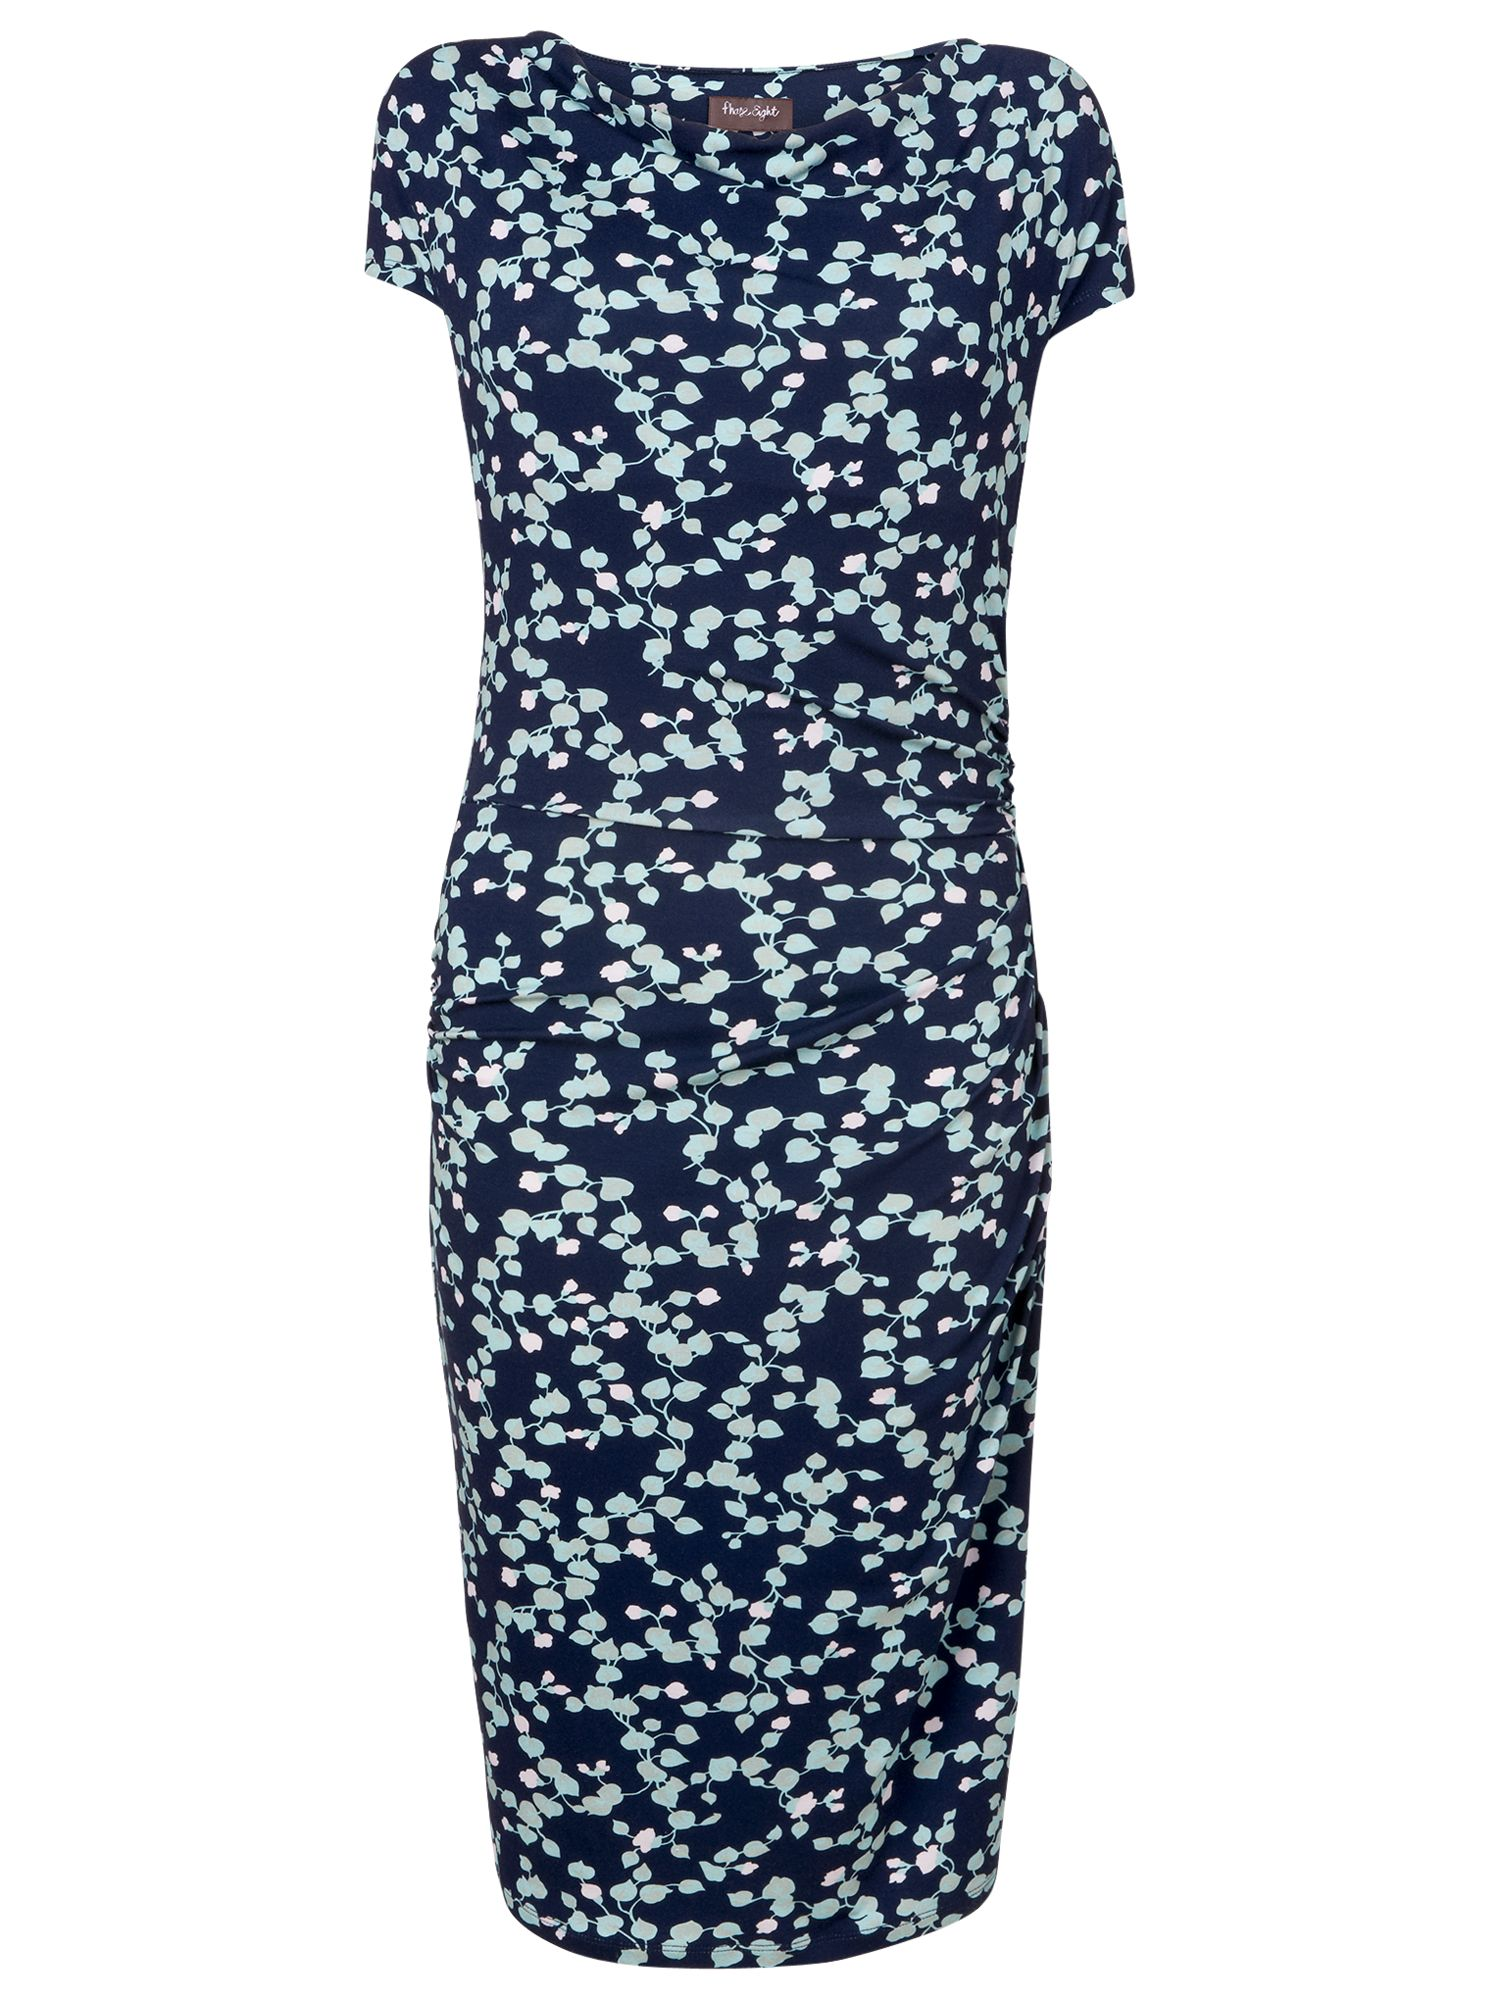 phase eight pandora print dress navy/aqua, phase, eight, pandora, print, dress, navy/aqua, phase eight, 18|6, edition magazine, into the blue, women, womens dresses, special offers, womenswear offers, womens dresses offers, gifts, wedding, wedding clothing, female guests, 20% off full price phase eight, latest reductions, fashion magazine, brands l-z, inactive womenswear, 1870147